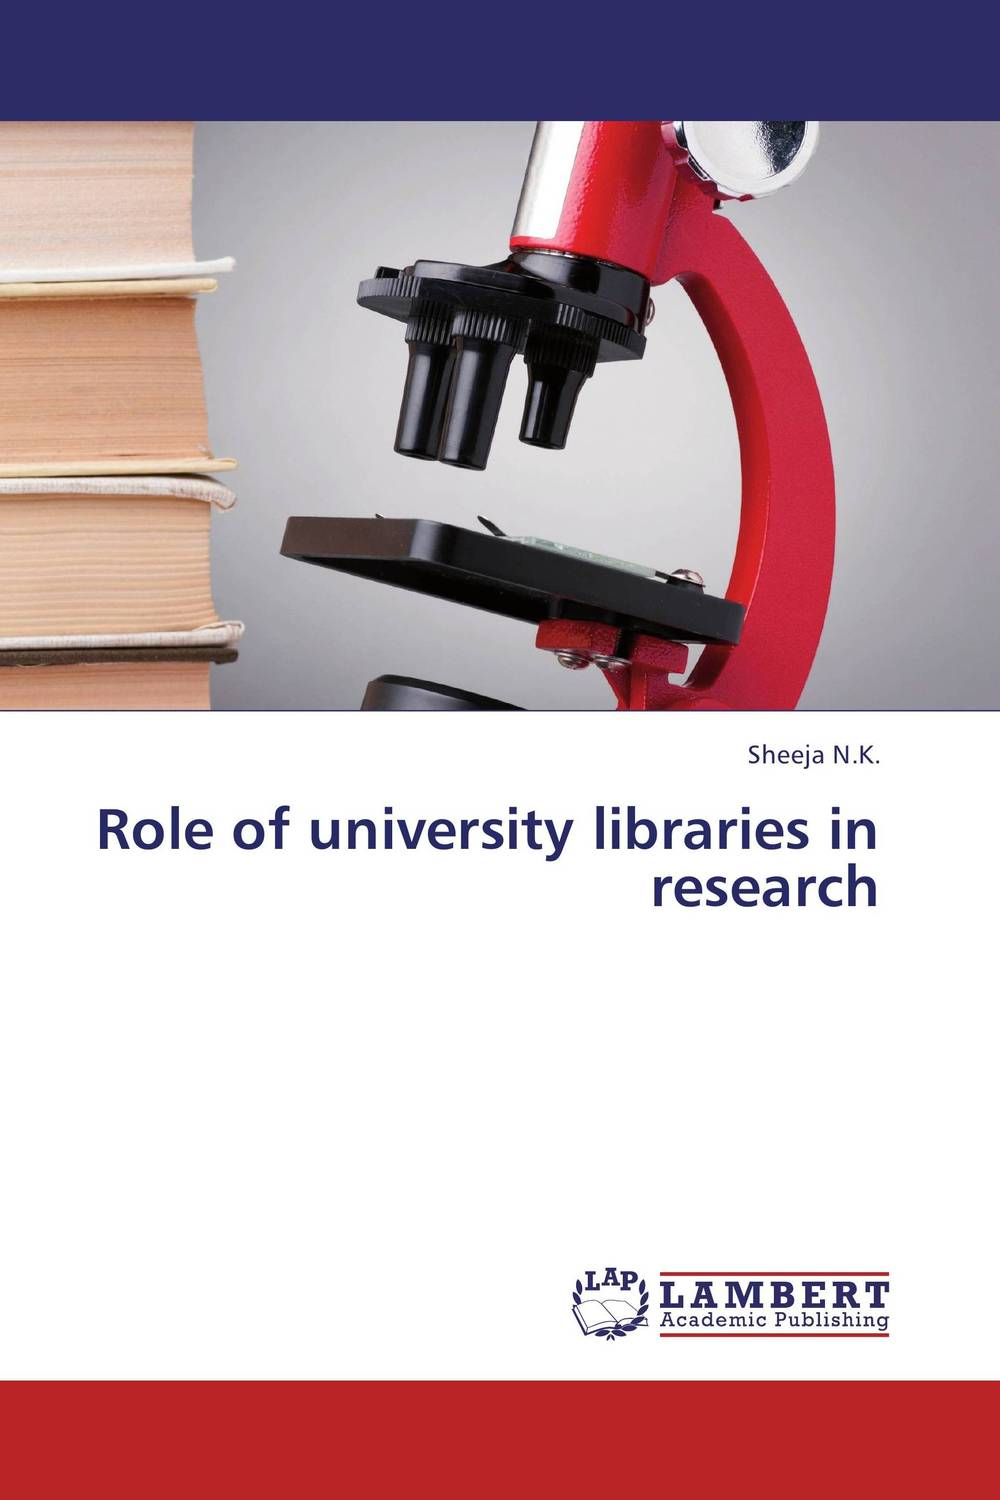 купить Role of university libraries in research недорого